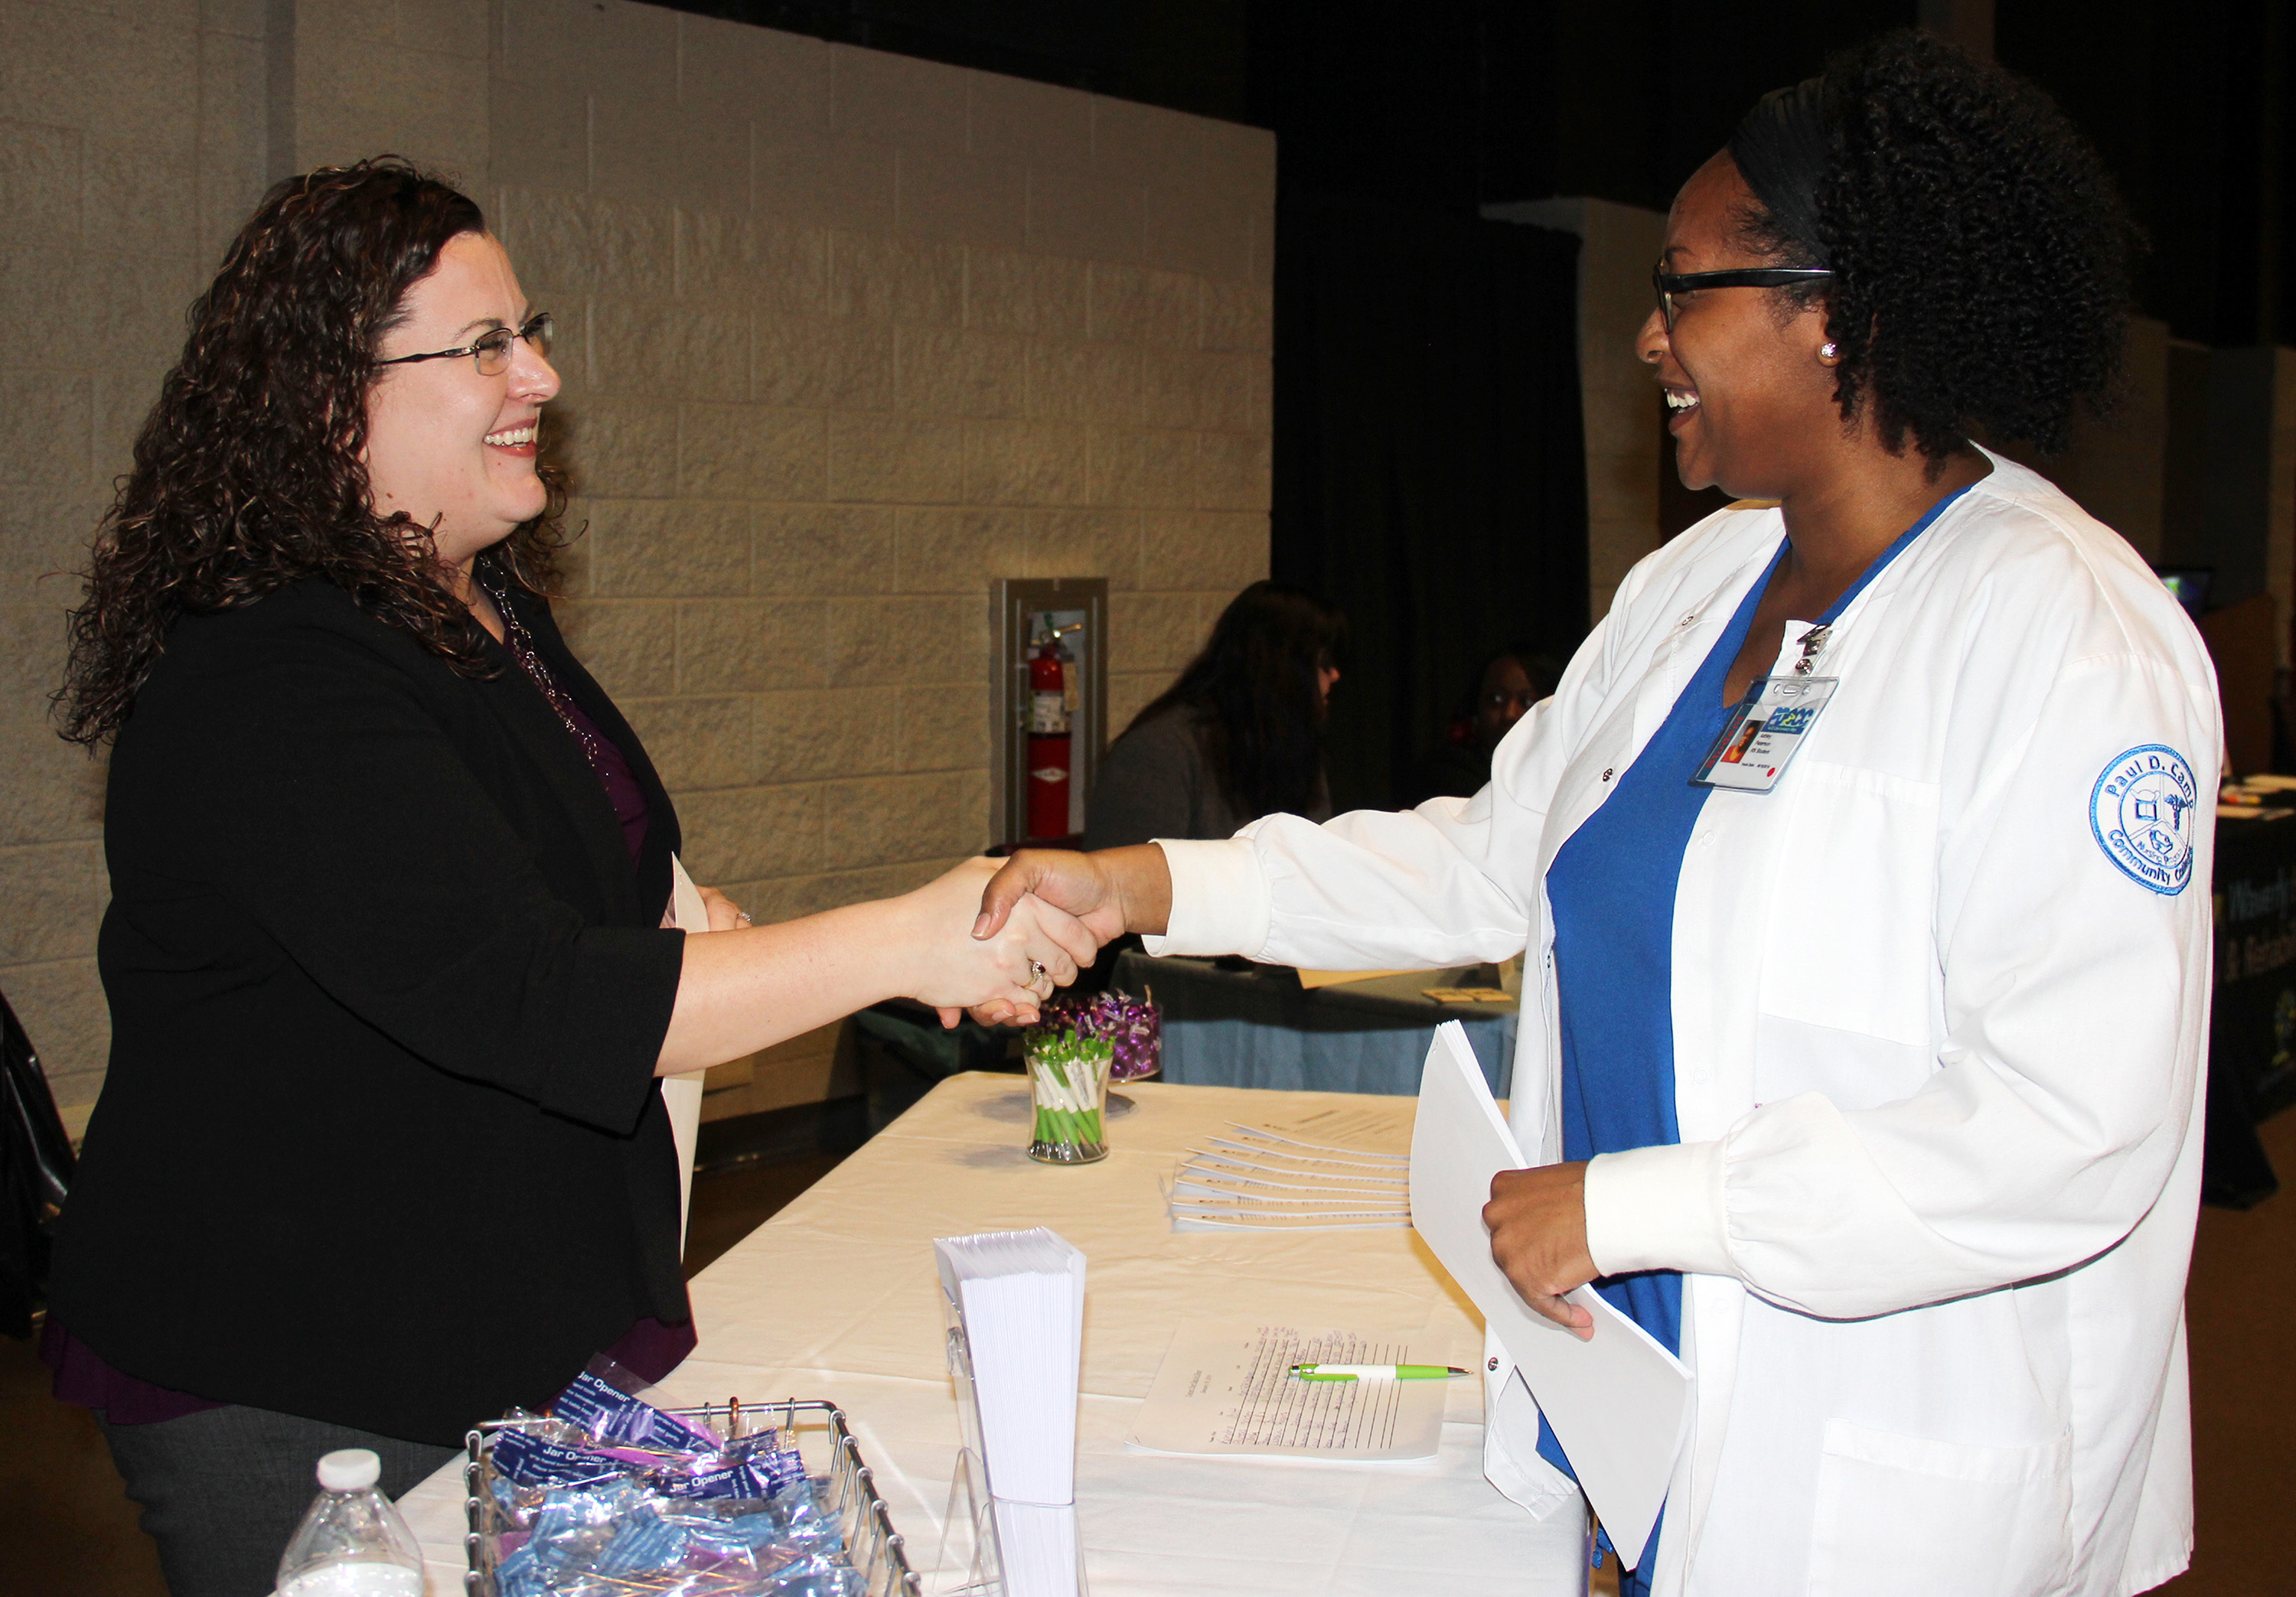 Healthcare Professionals Career Fair at PDCCC